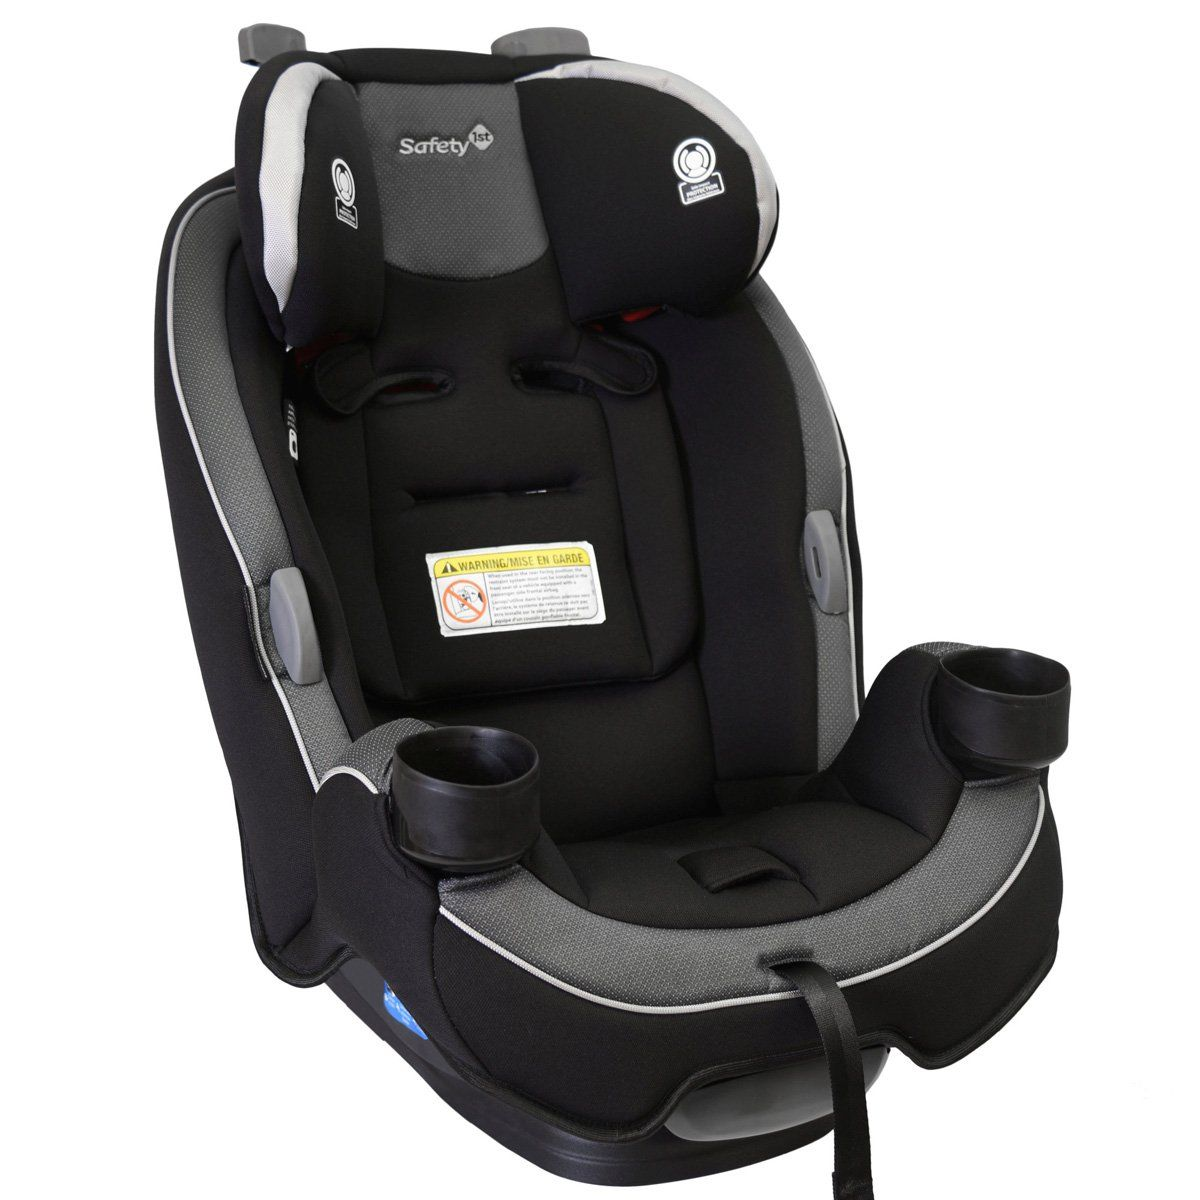 Safety 1st Grow N Go Car Seat Roan Car seats, Forward